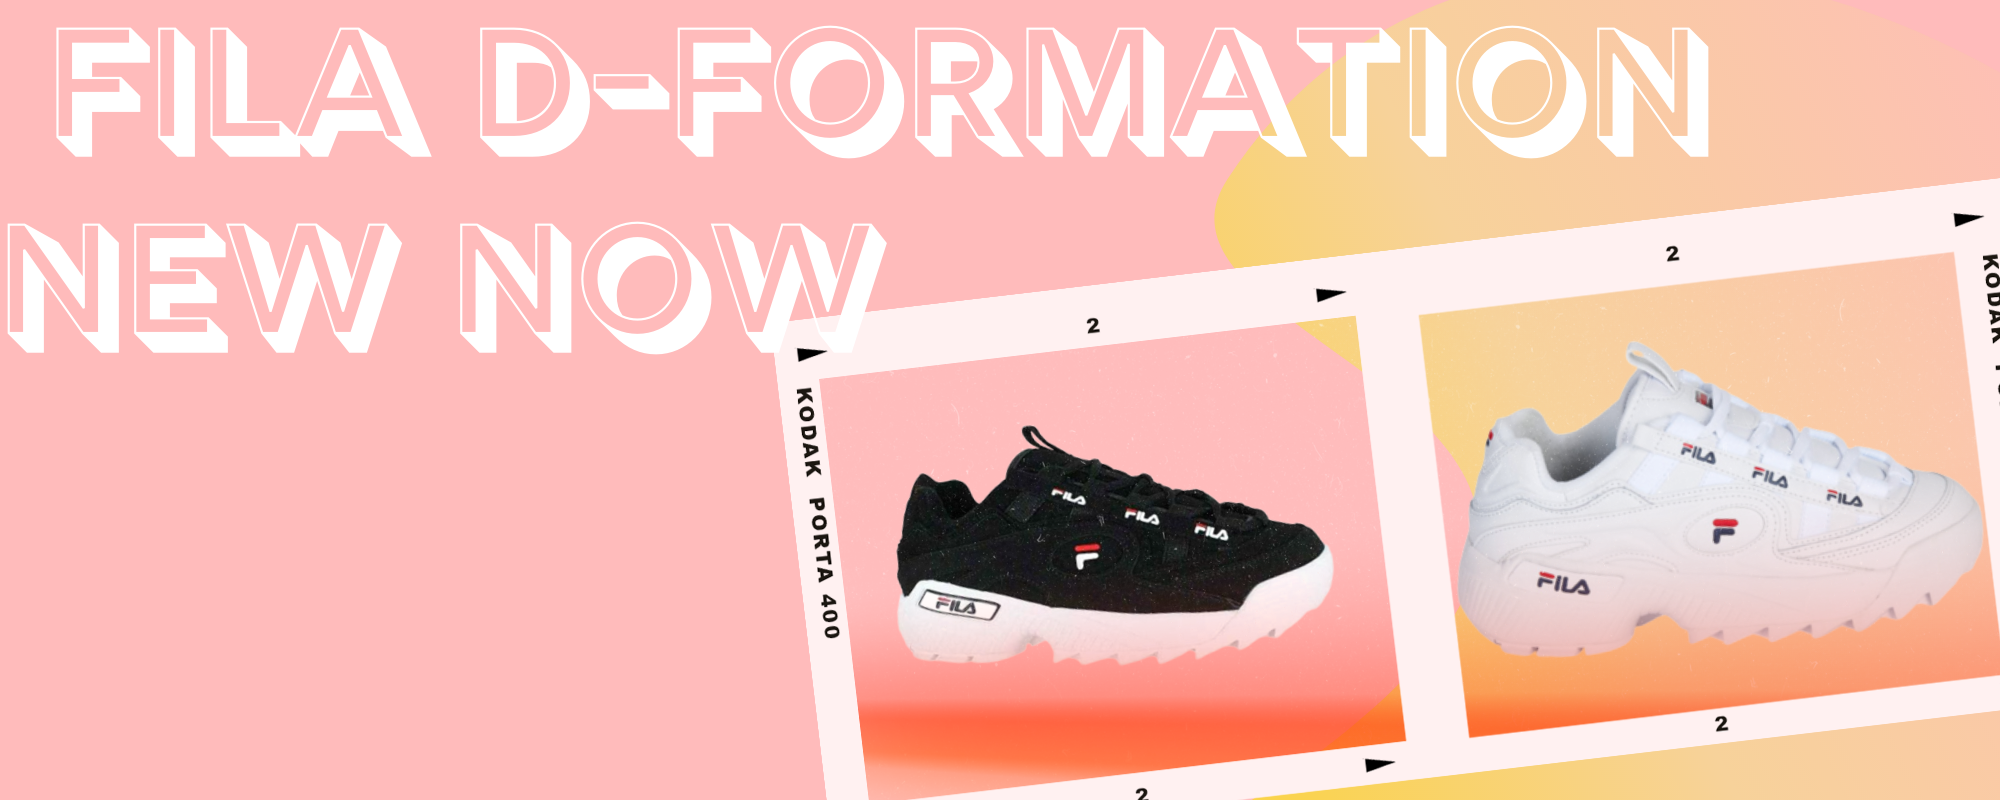 FILA D-FORMATION new now